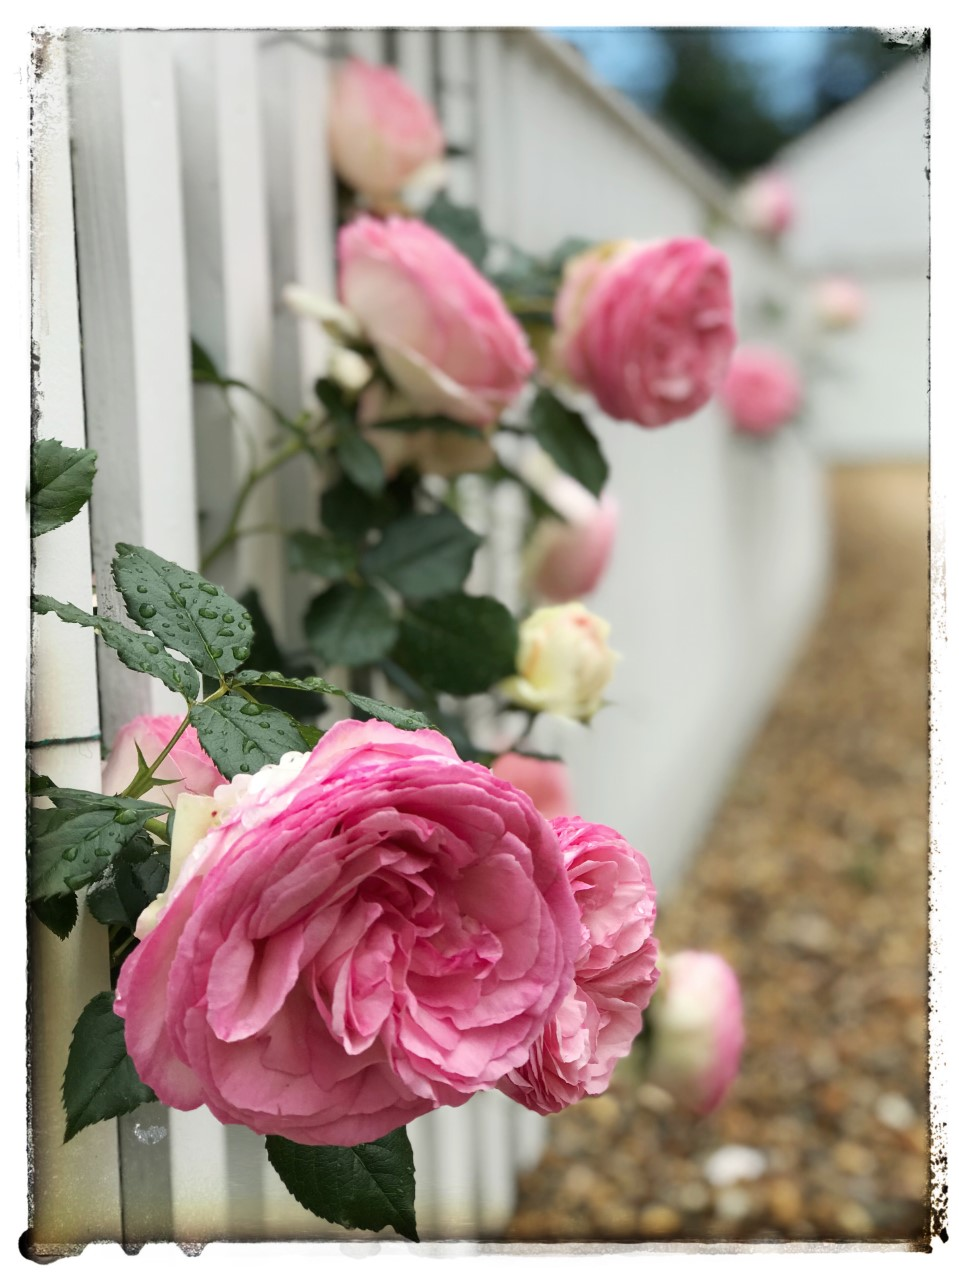 North Water roses